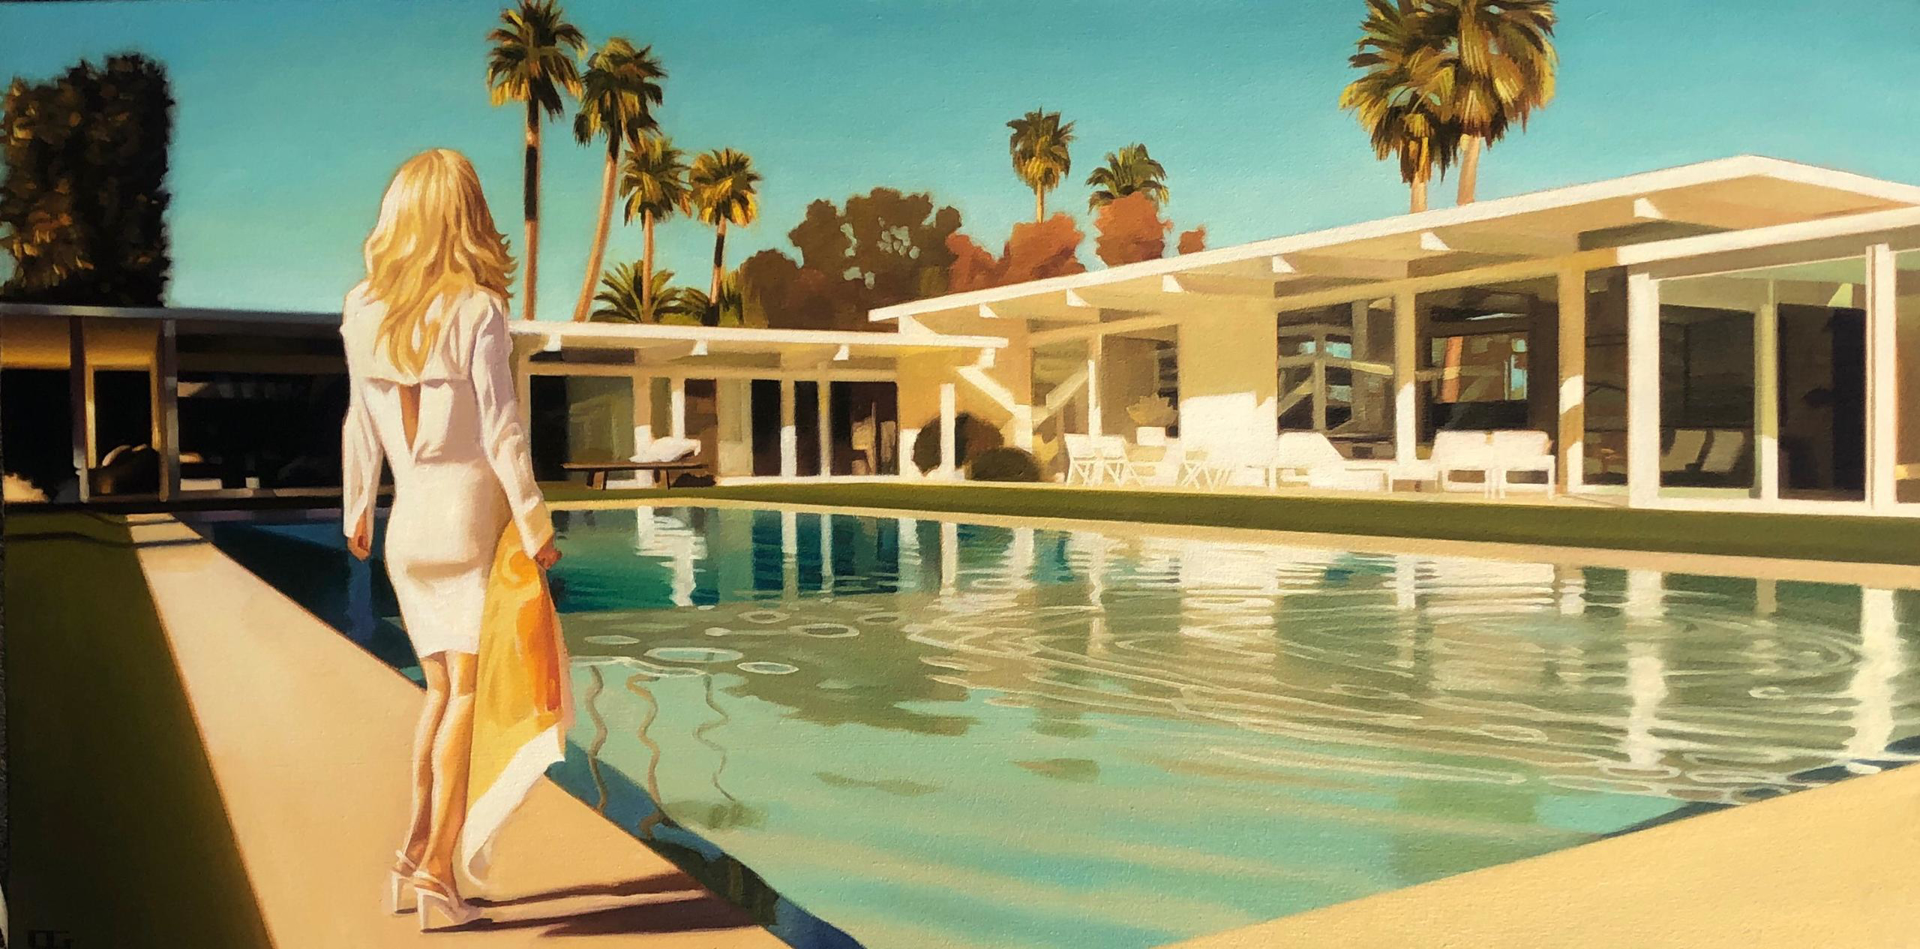 Before the Party by Carrie Graber